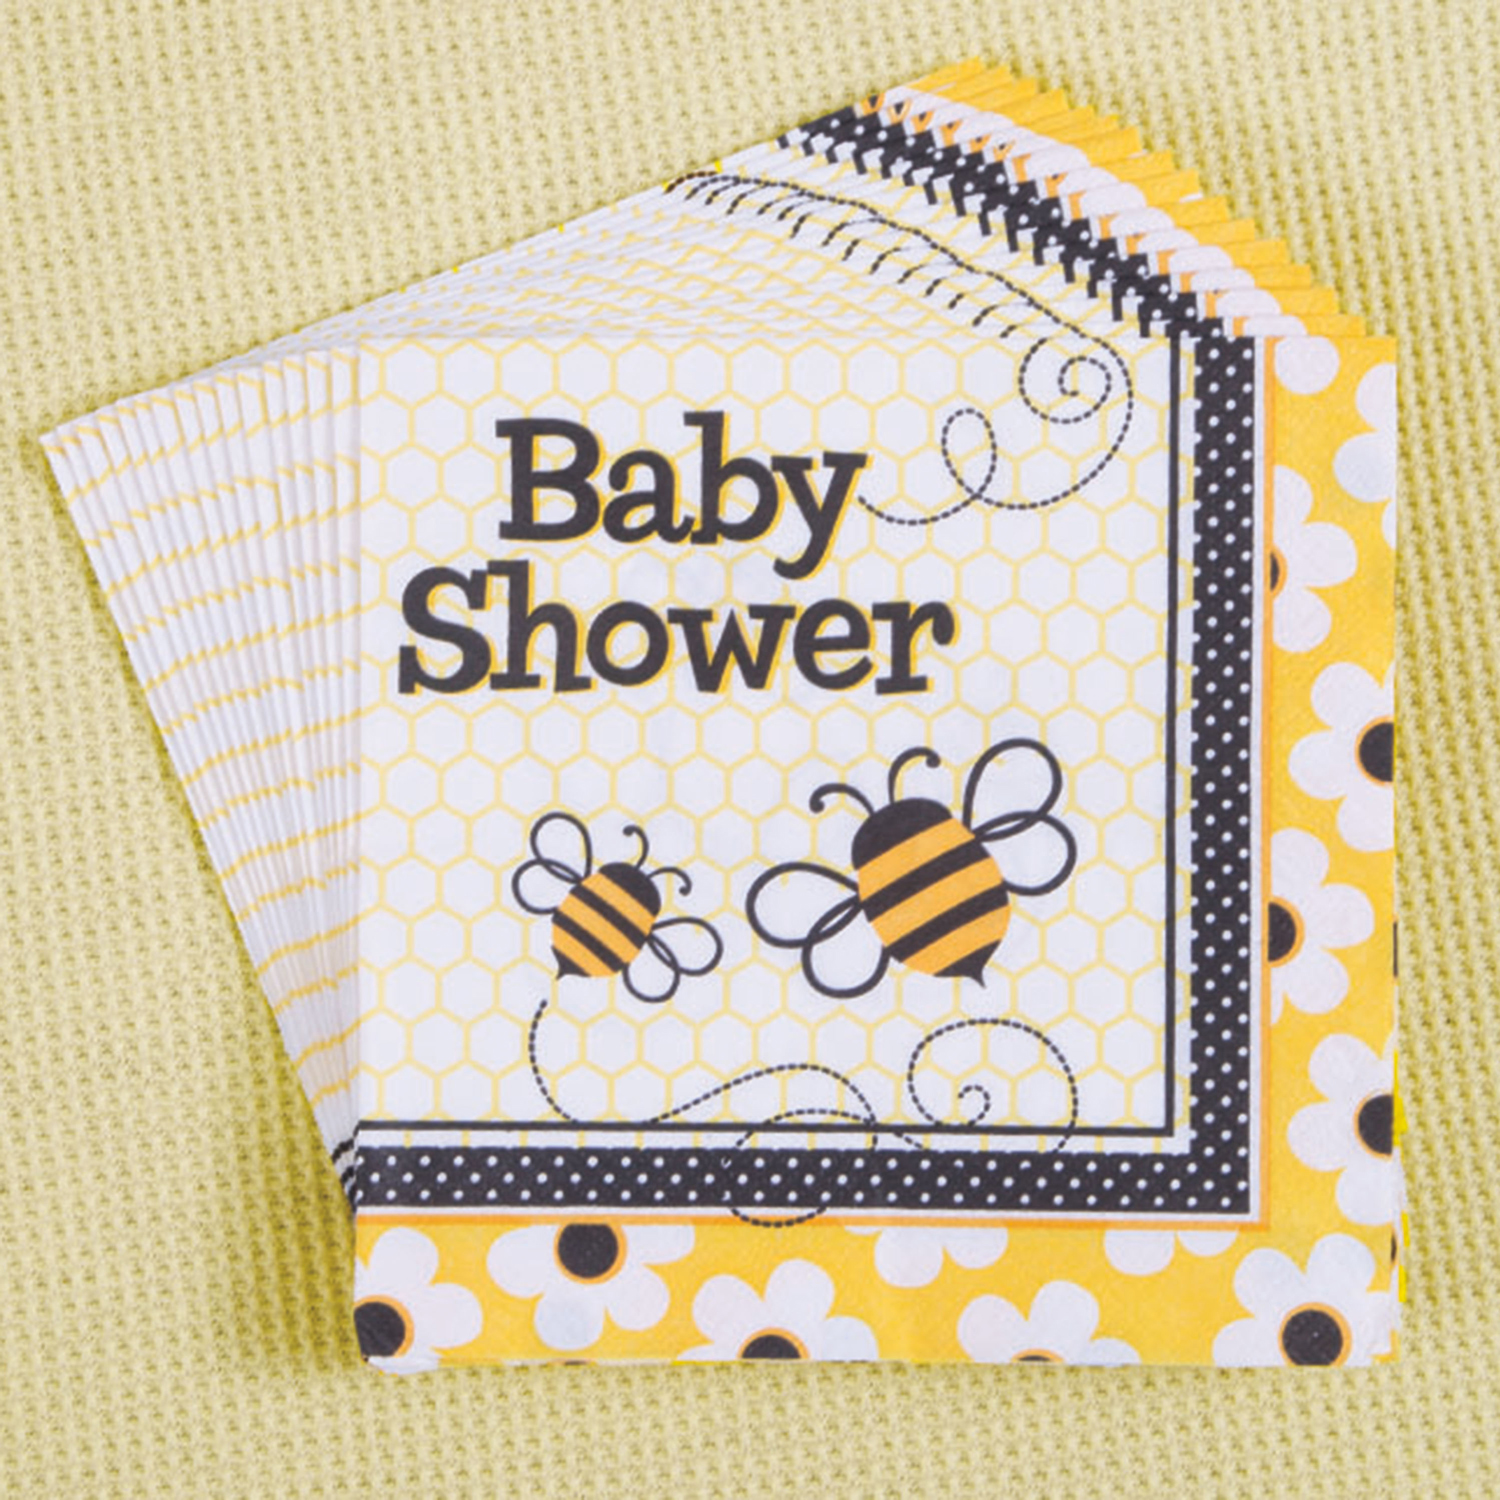 uk decorating shower bumble of decor decorations bee baby party